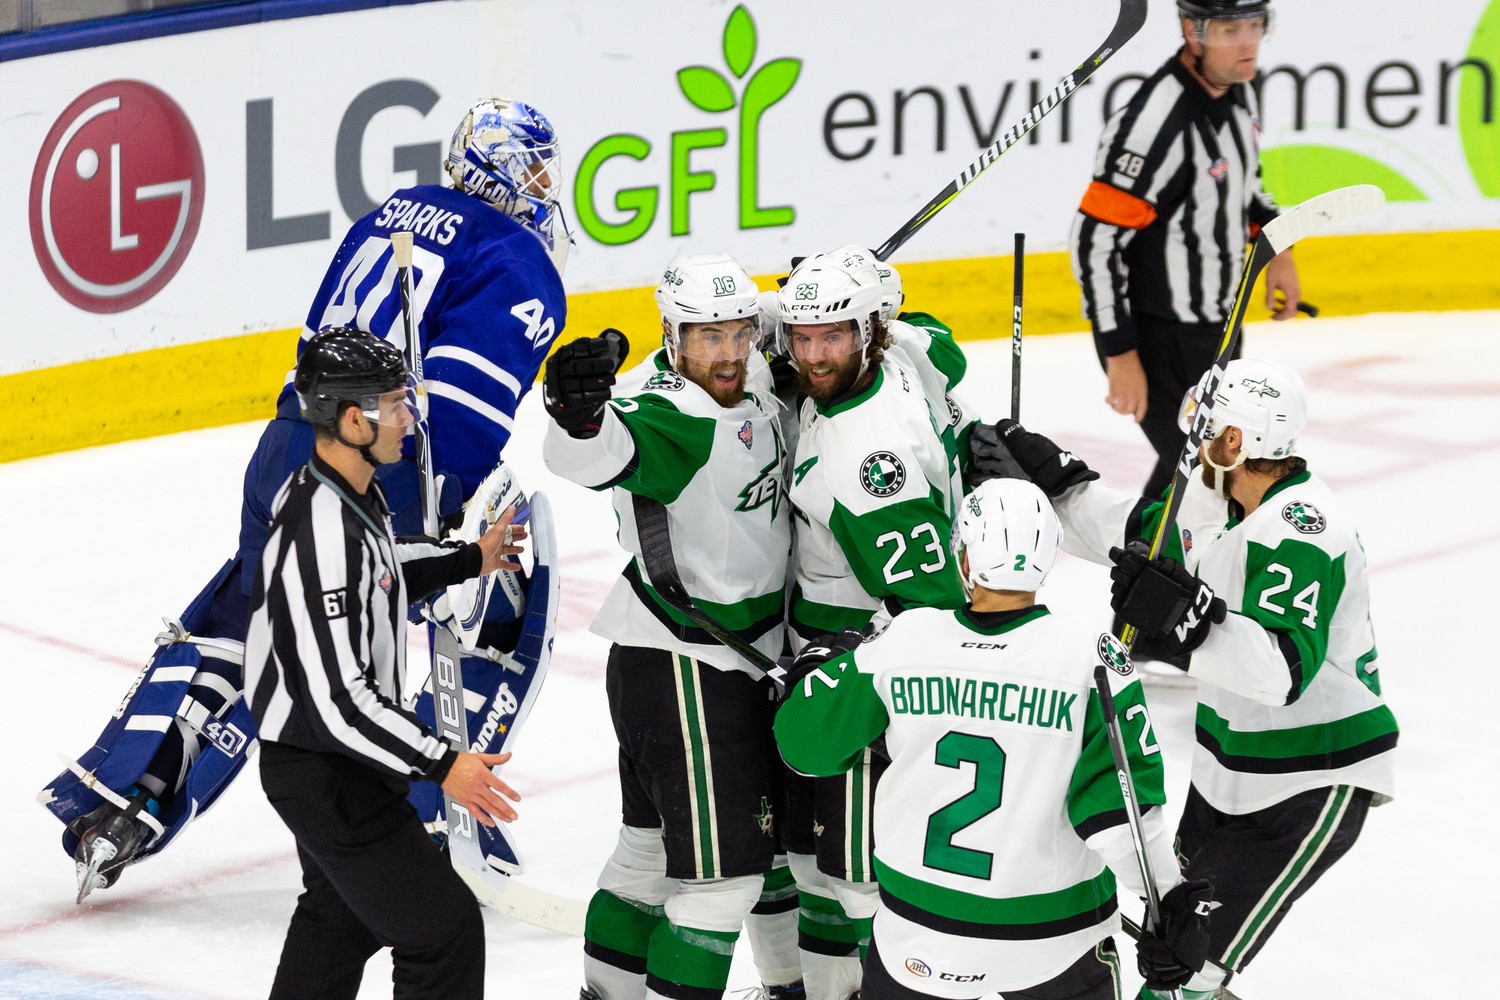 The Texas Stars beat the Toronto Marlies 5-2 in Game 6 of the Calder Cup Finals Tuesday to force a decisive Game 7 Thursday night in Canada.